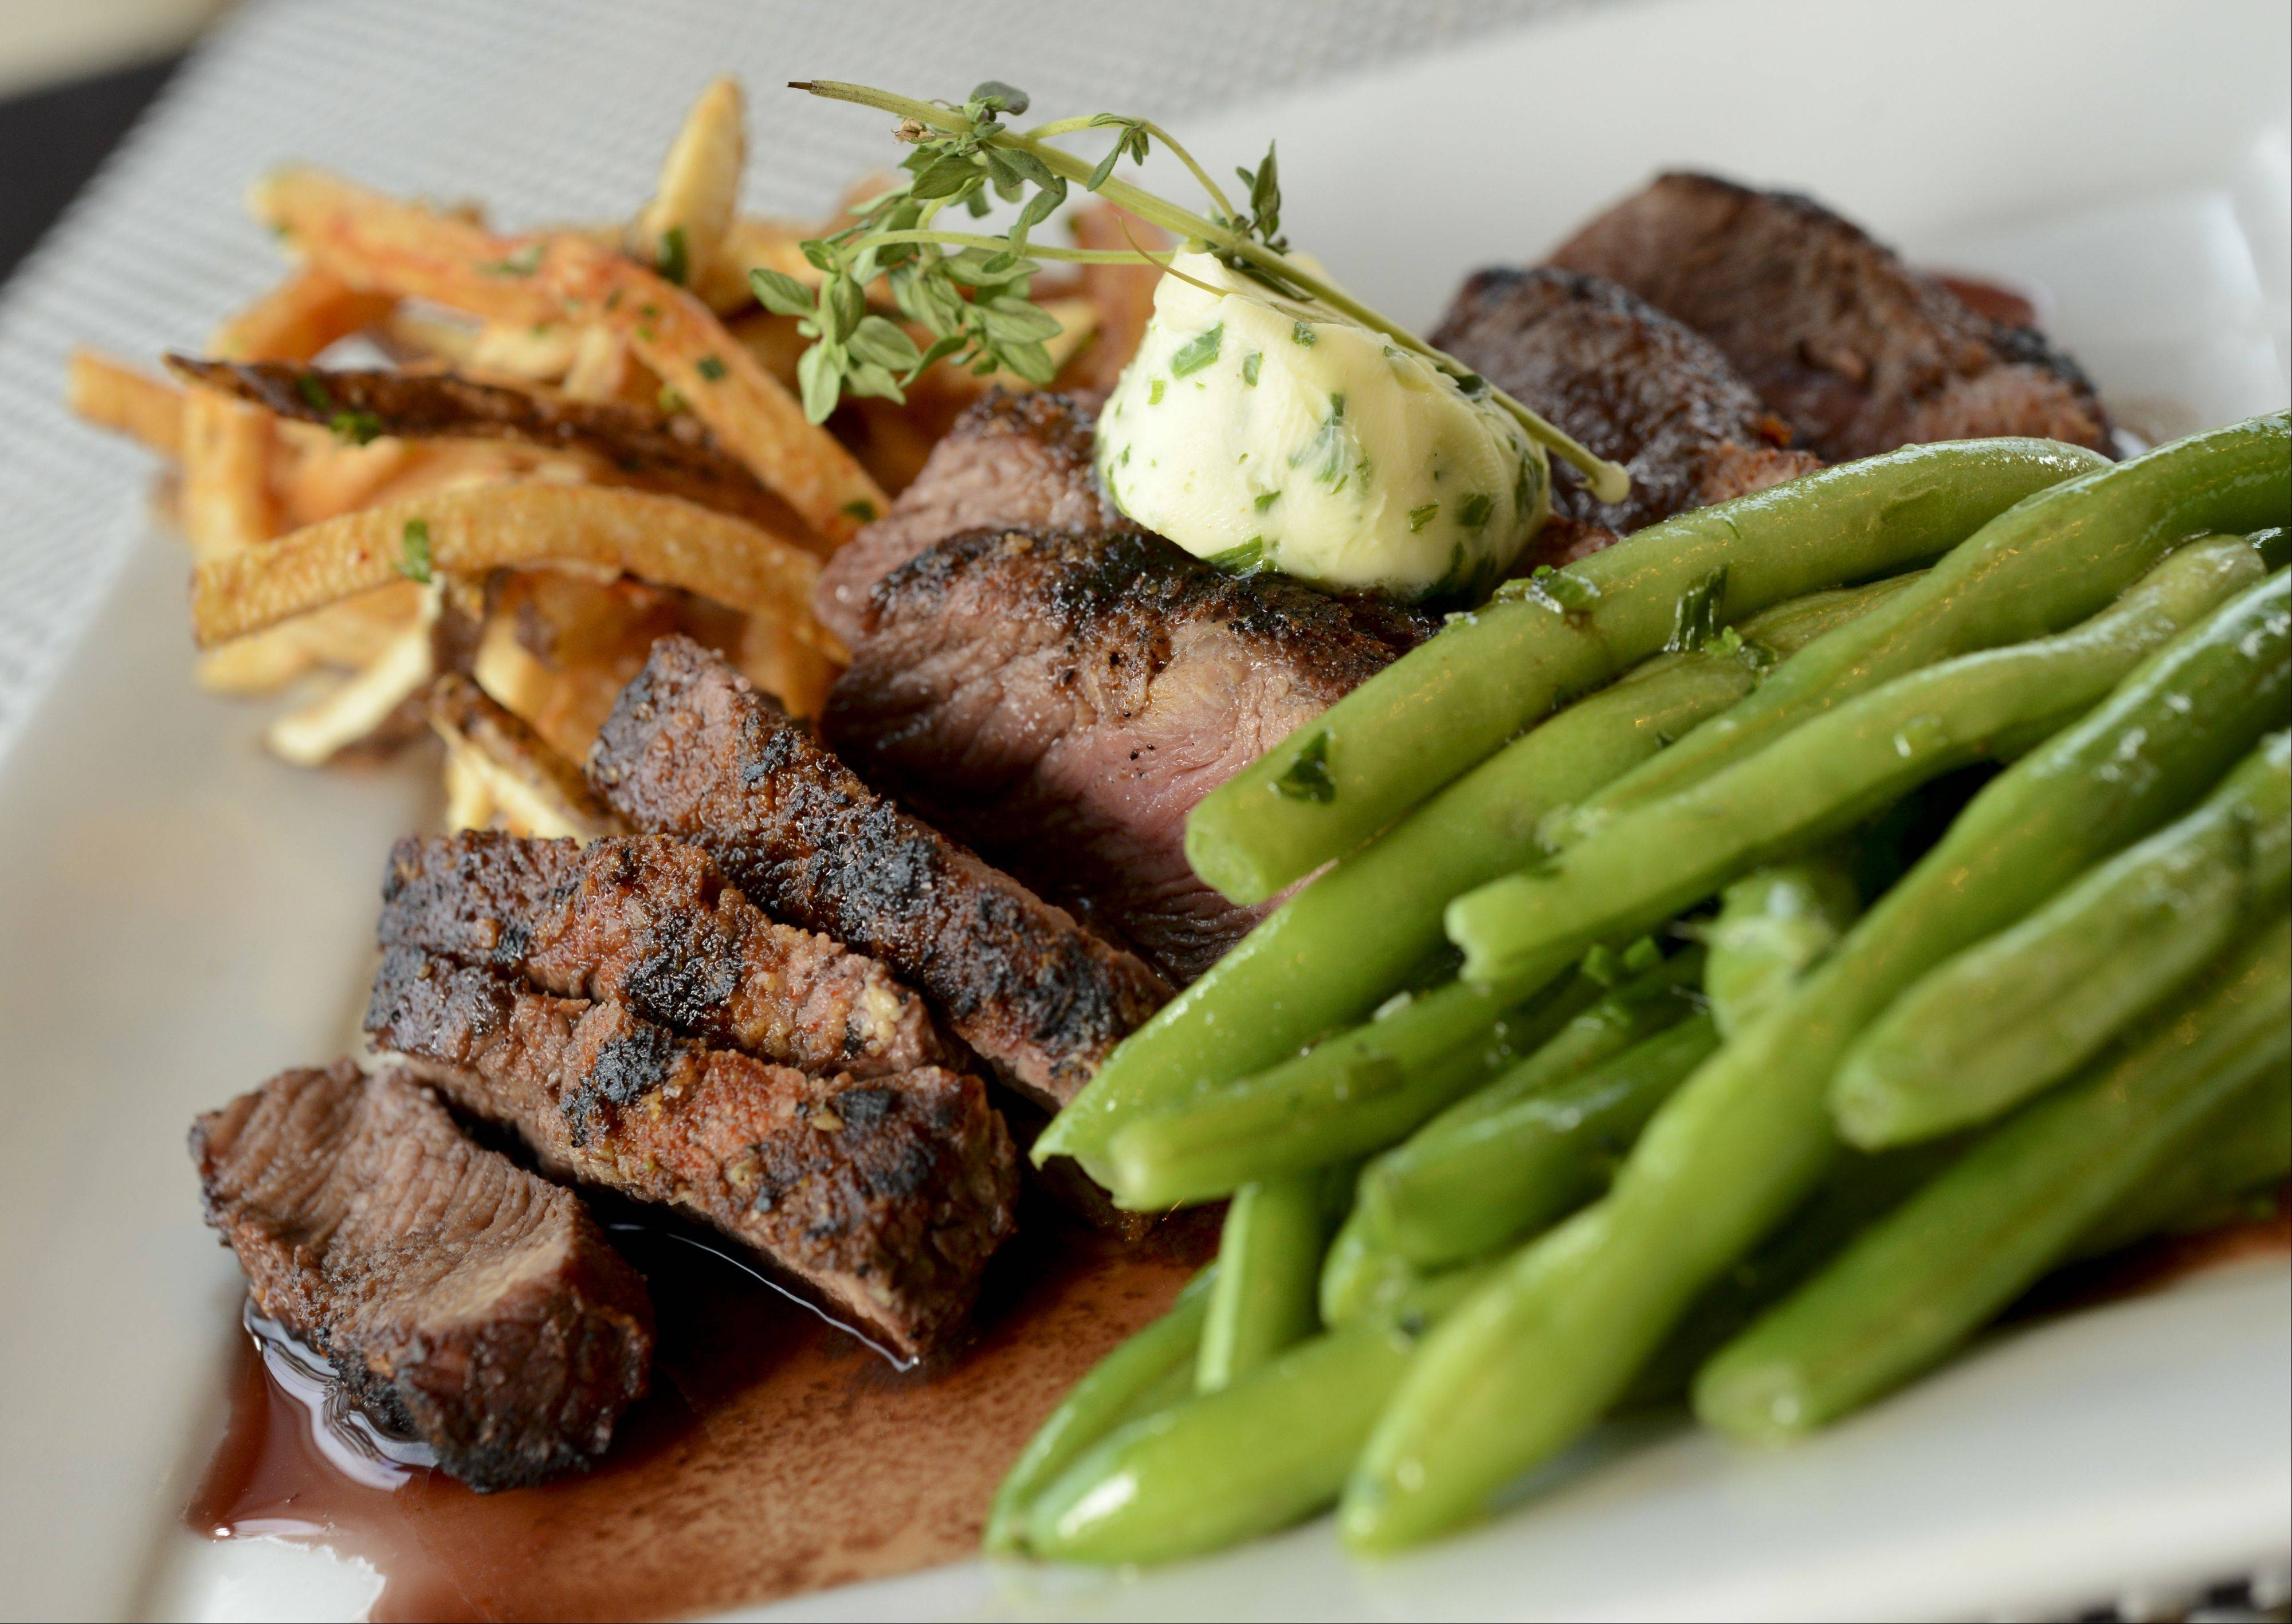 Grilled hanger steak comes with a rich burgundy sauce at Paris Bistro in Naperville.